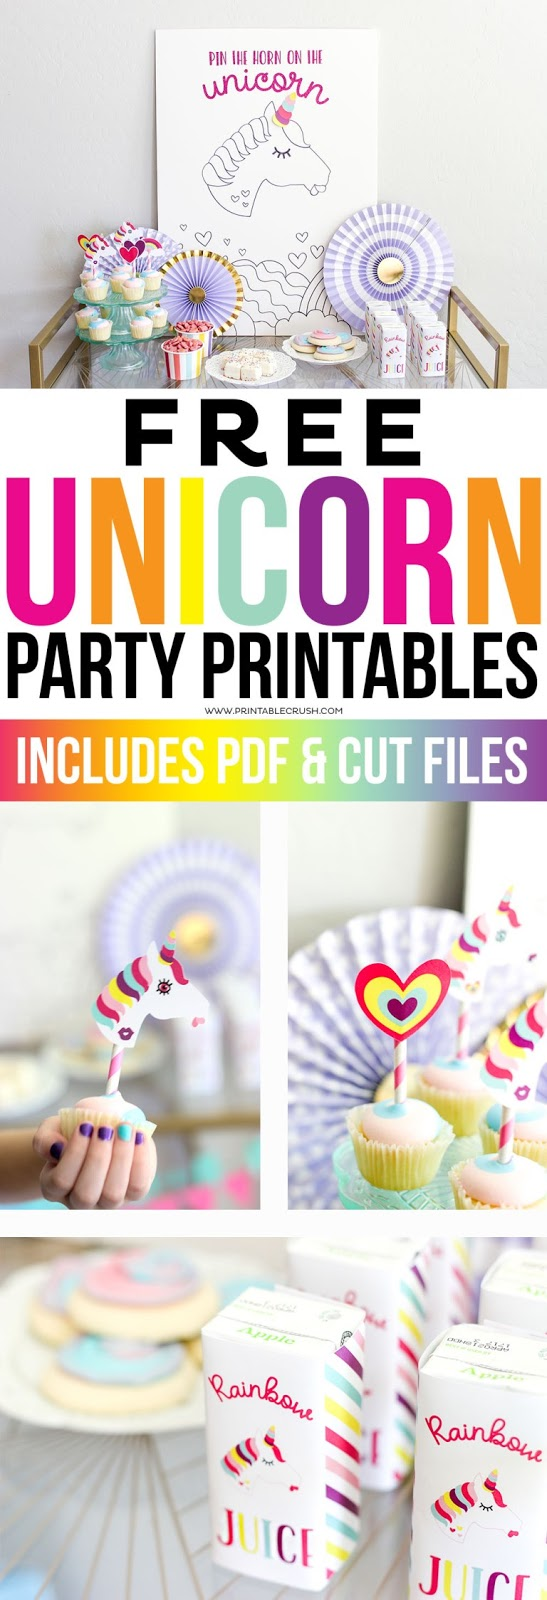 Musings of an Average Mom: Unicorn Party